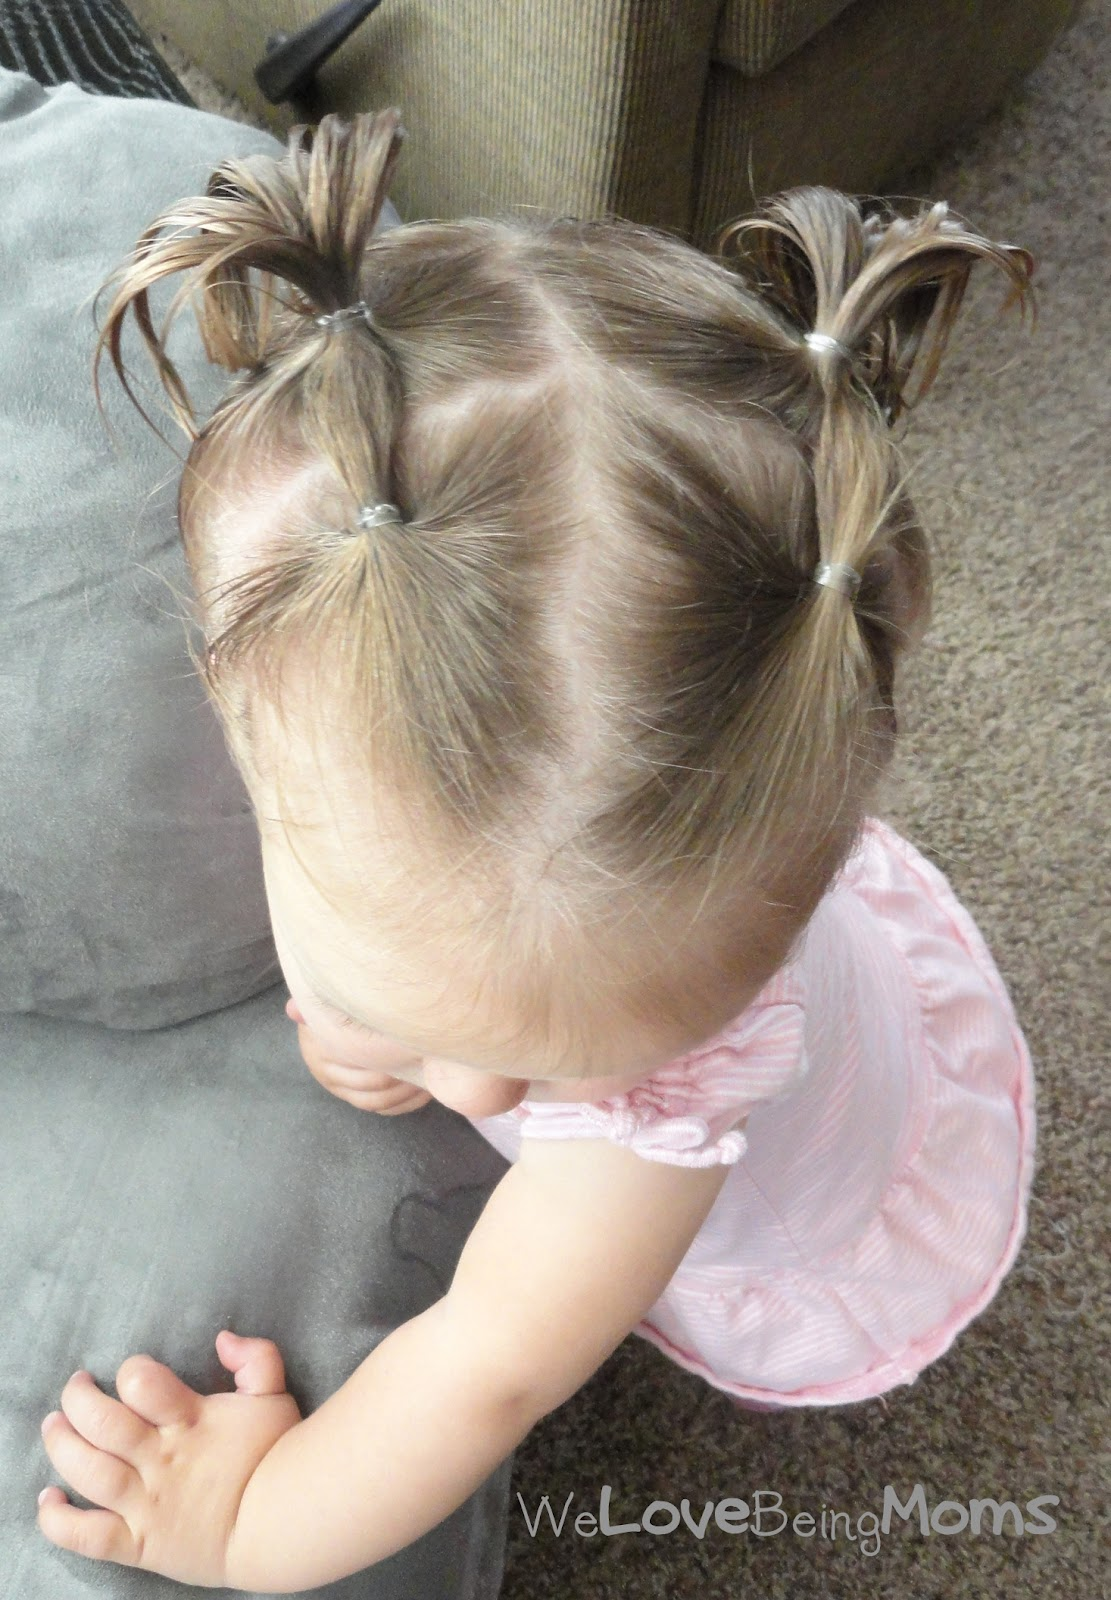 Hairstyles For 1 Year Old Baby Girl : hairstyles, Being, Moms!:, Toddler, Hairstyles